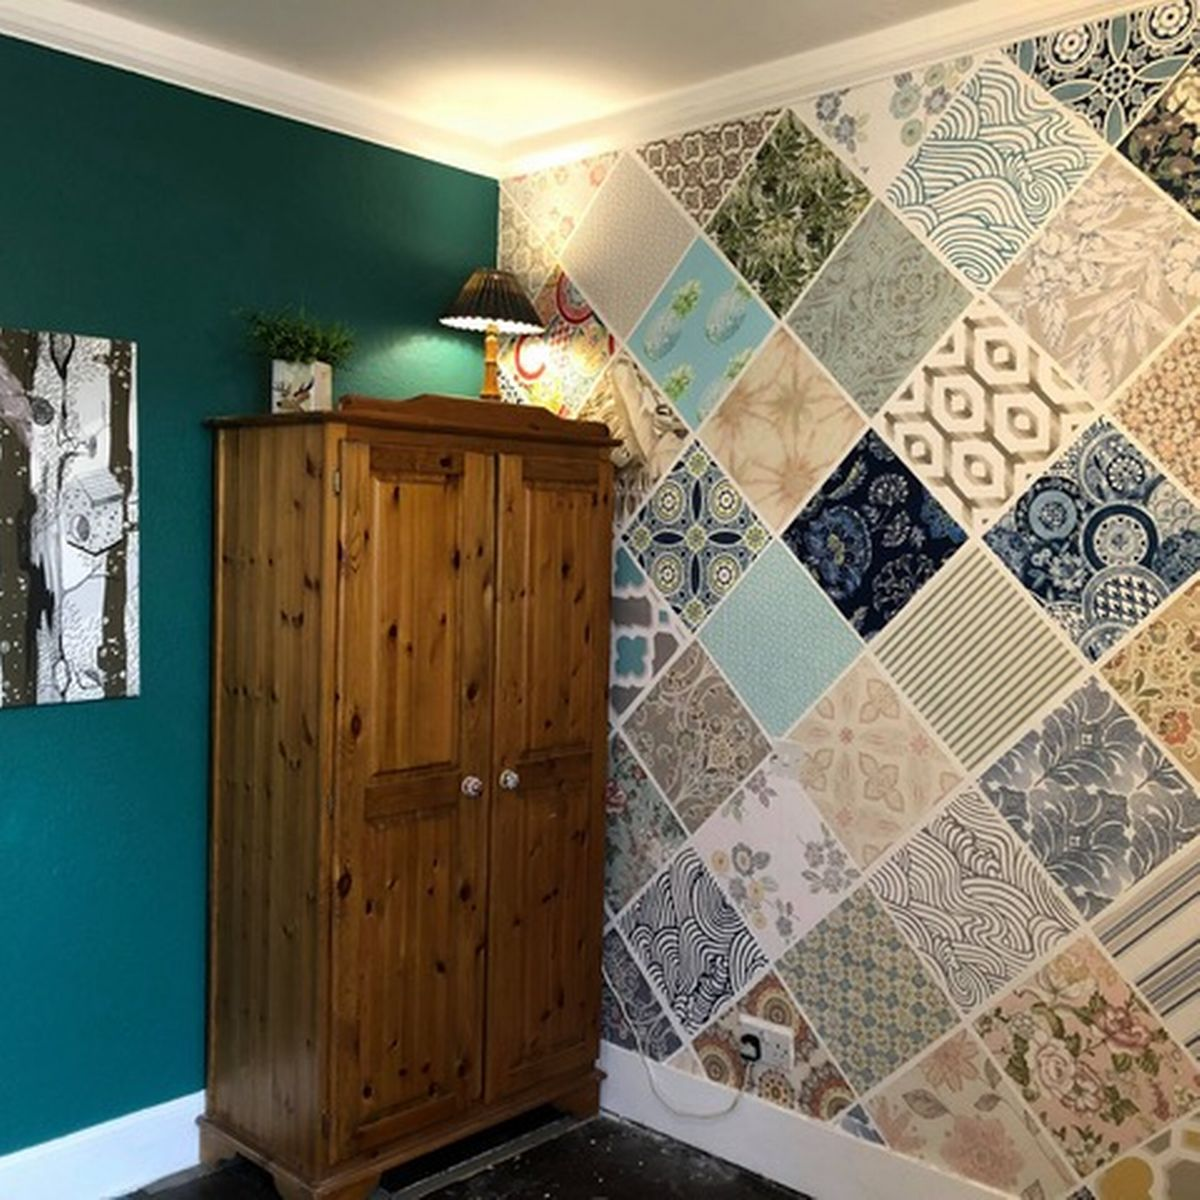 How To Create A Striking Feature Wall On A Budget By Using Wallpaper Samples Manchester Evening News